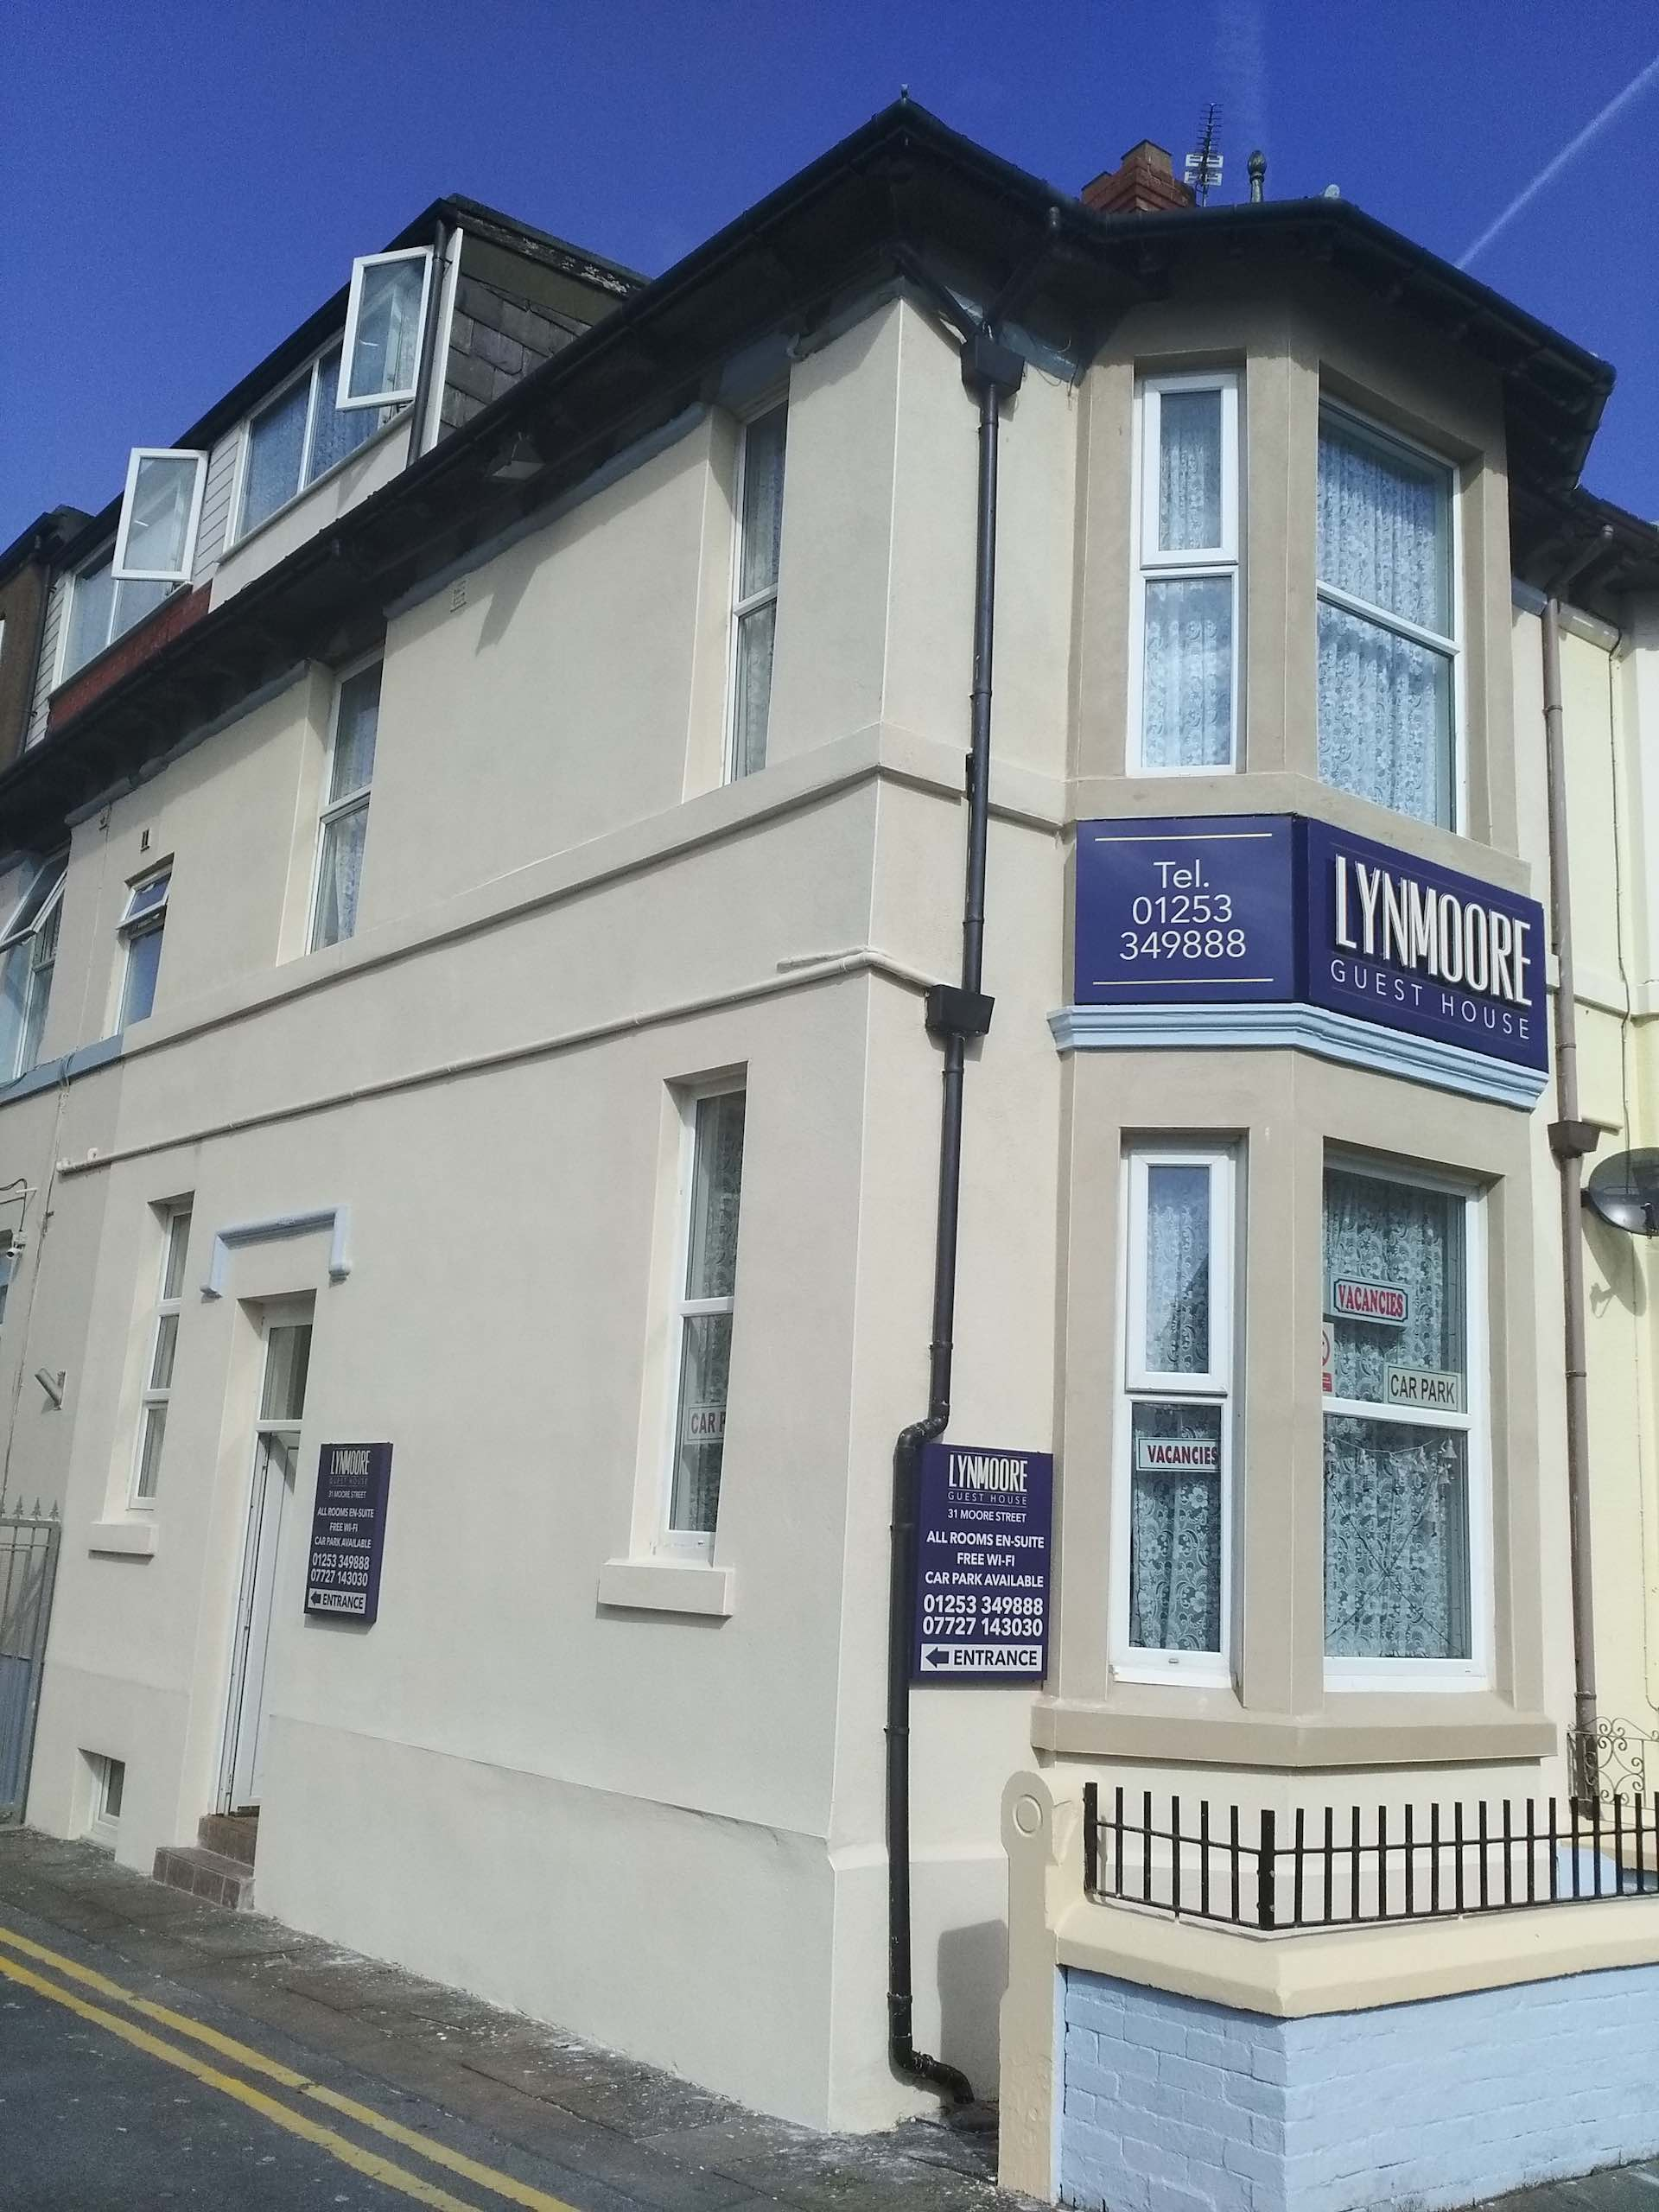 Book your room at Lynmoore Guest House - Blackpool